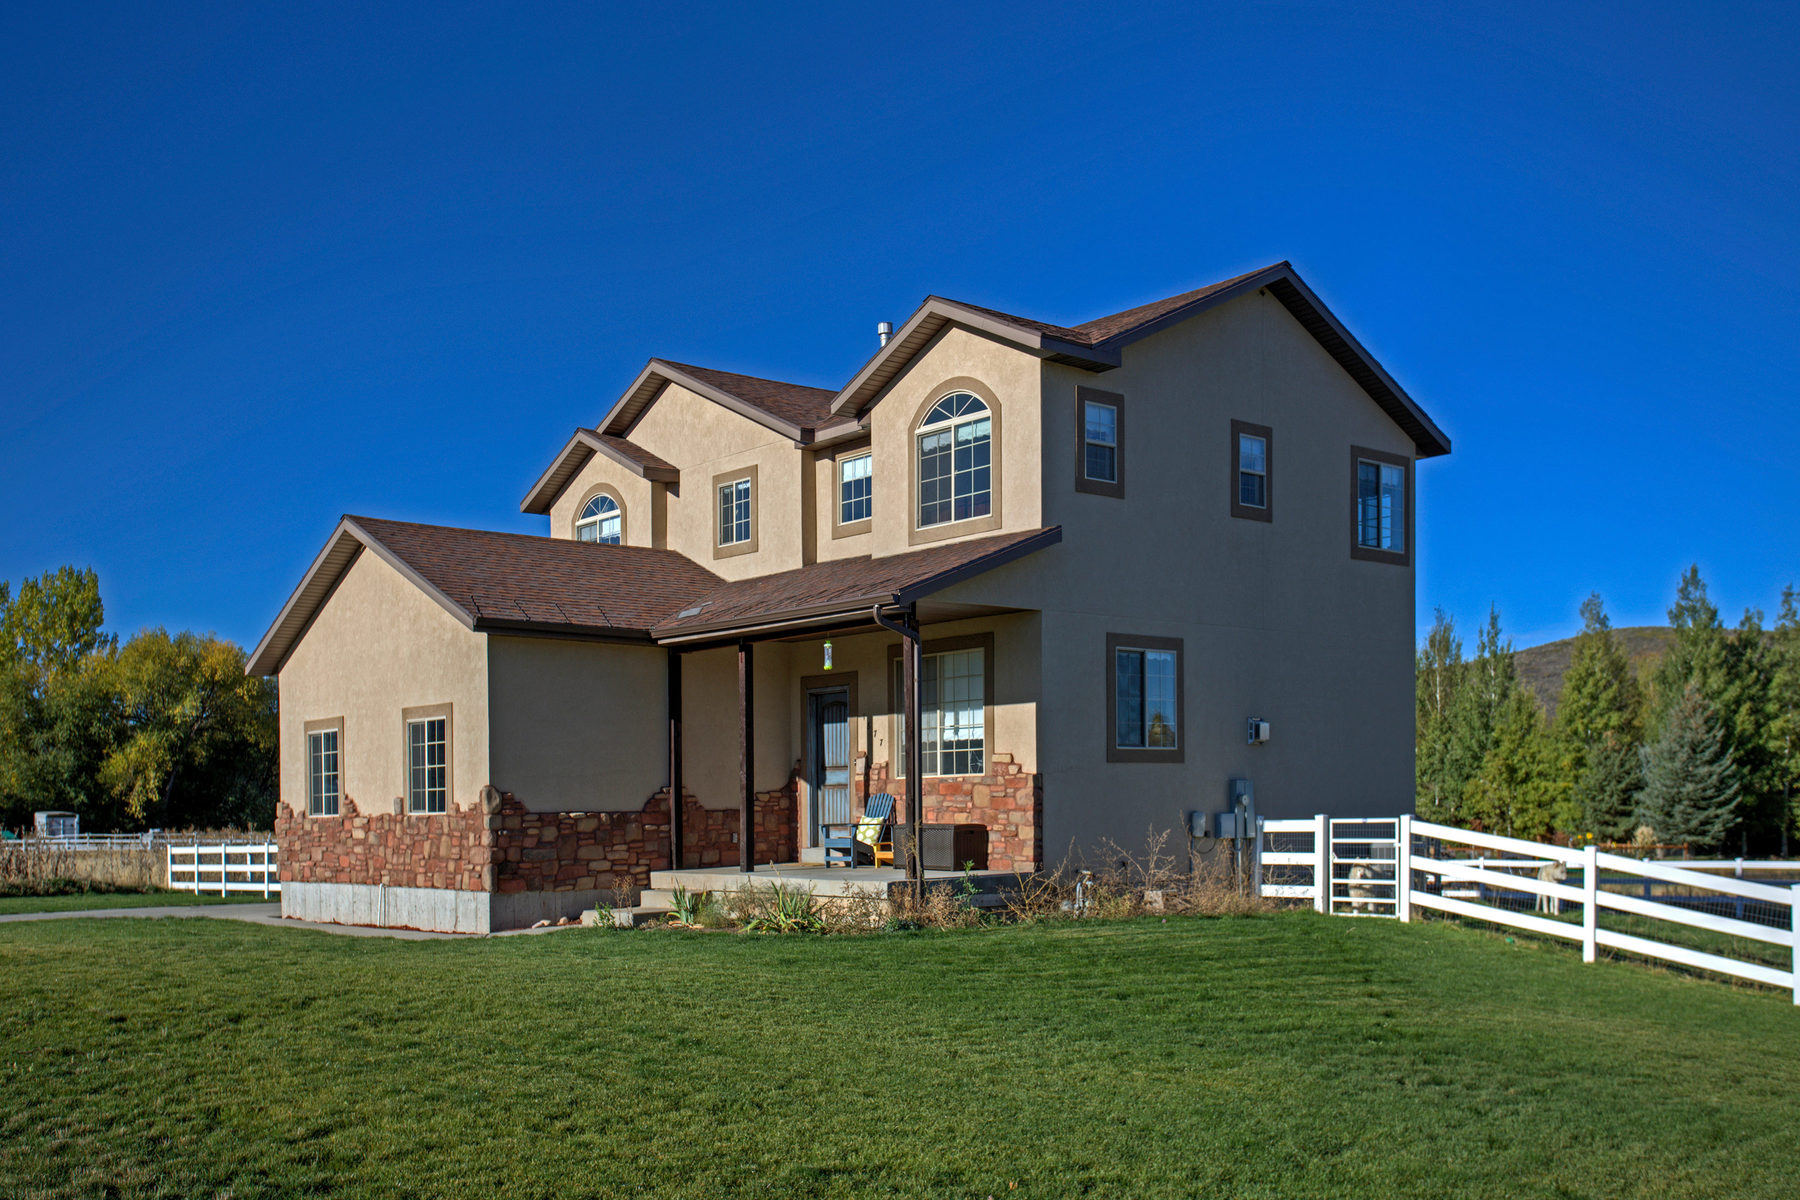 Property For Sale at Fabulous Value for a Fresh 4 BR Wild Willow Home